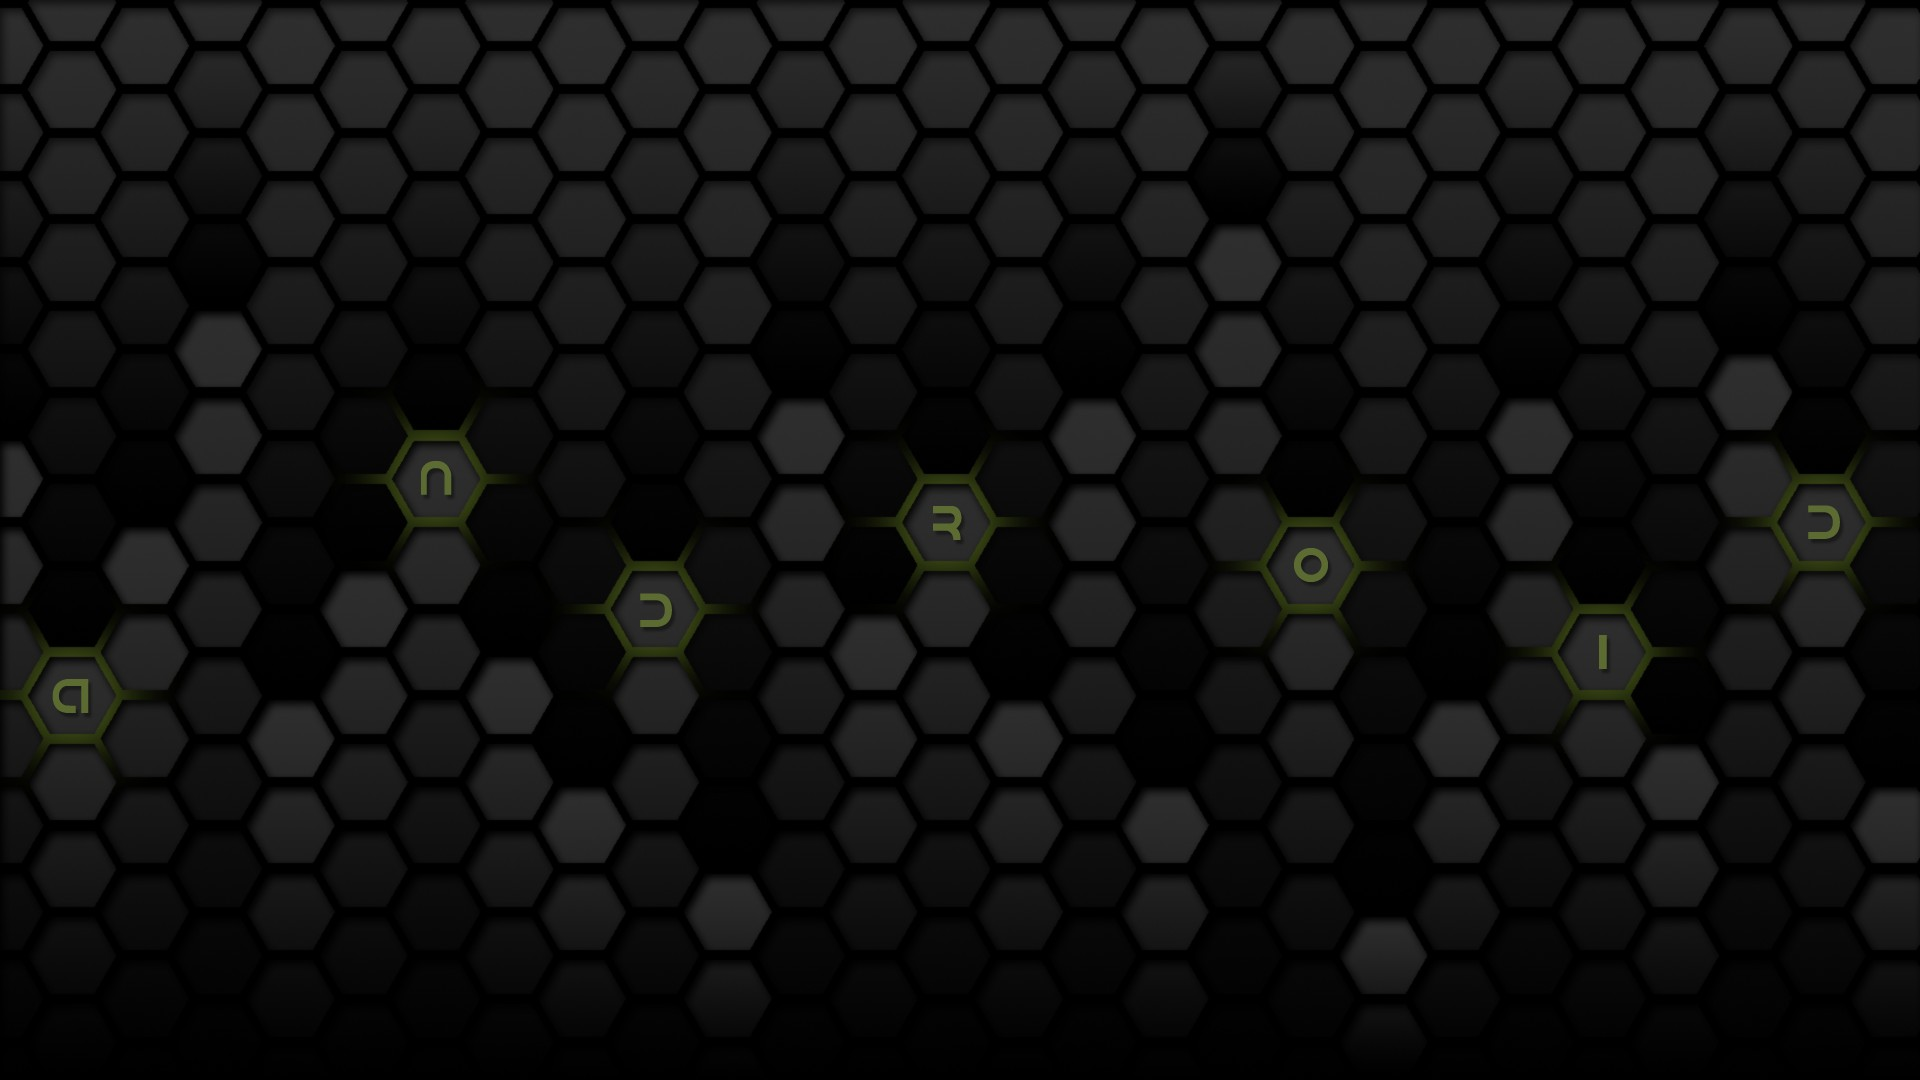 Honeycomb wallpapers background images page 6 - 1920x1080 File Name Free Download Android Honeycomb Hd Wallpaper